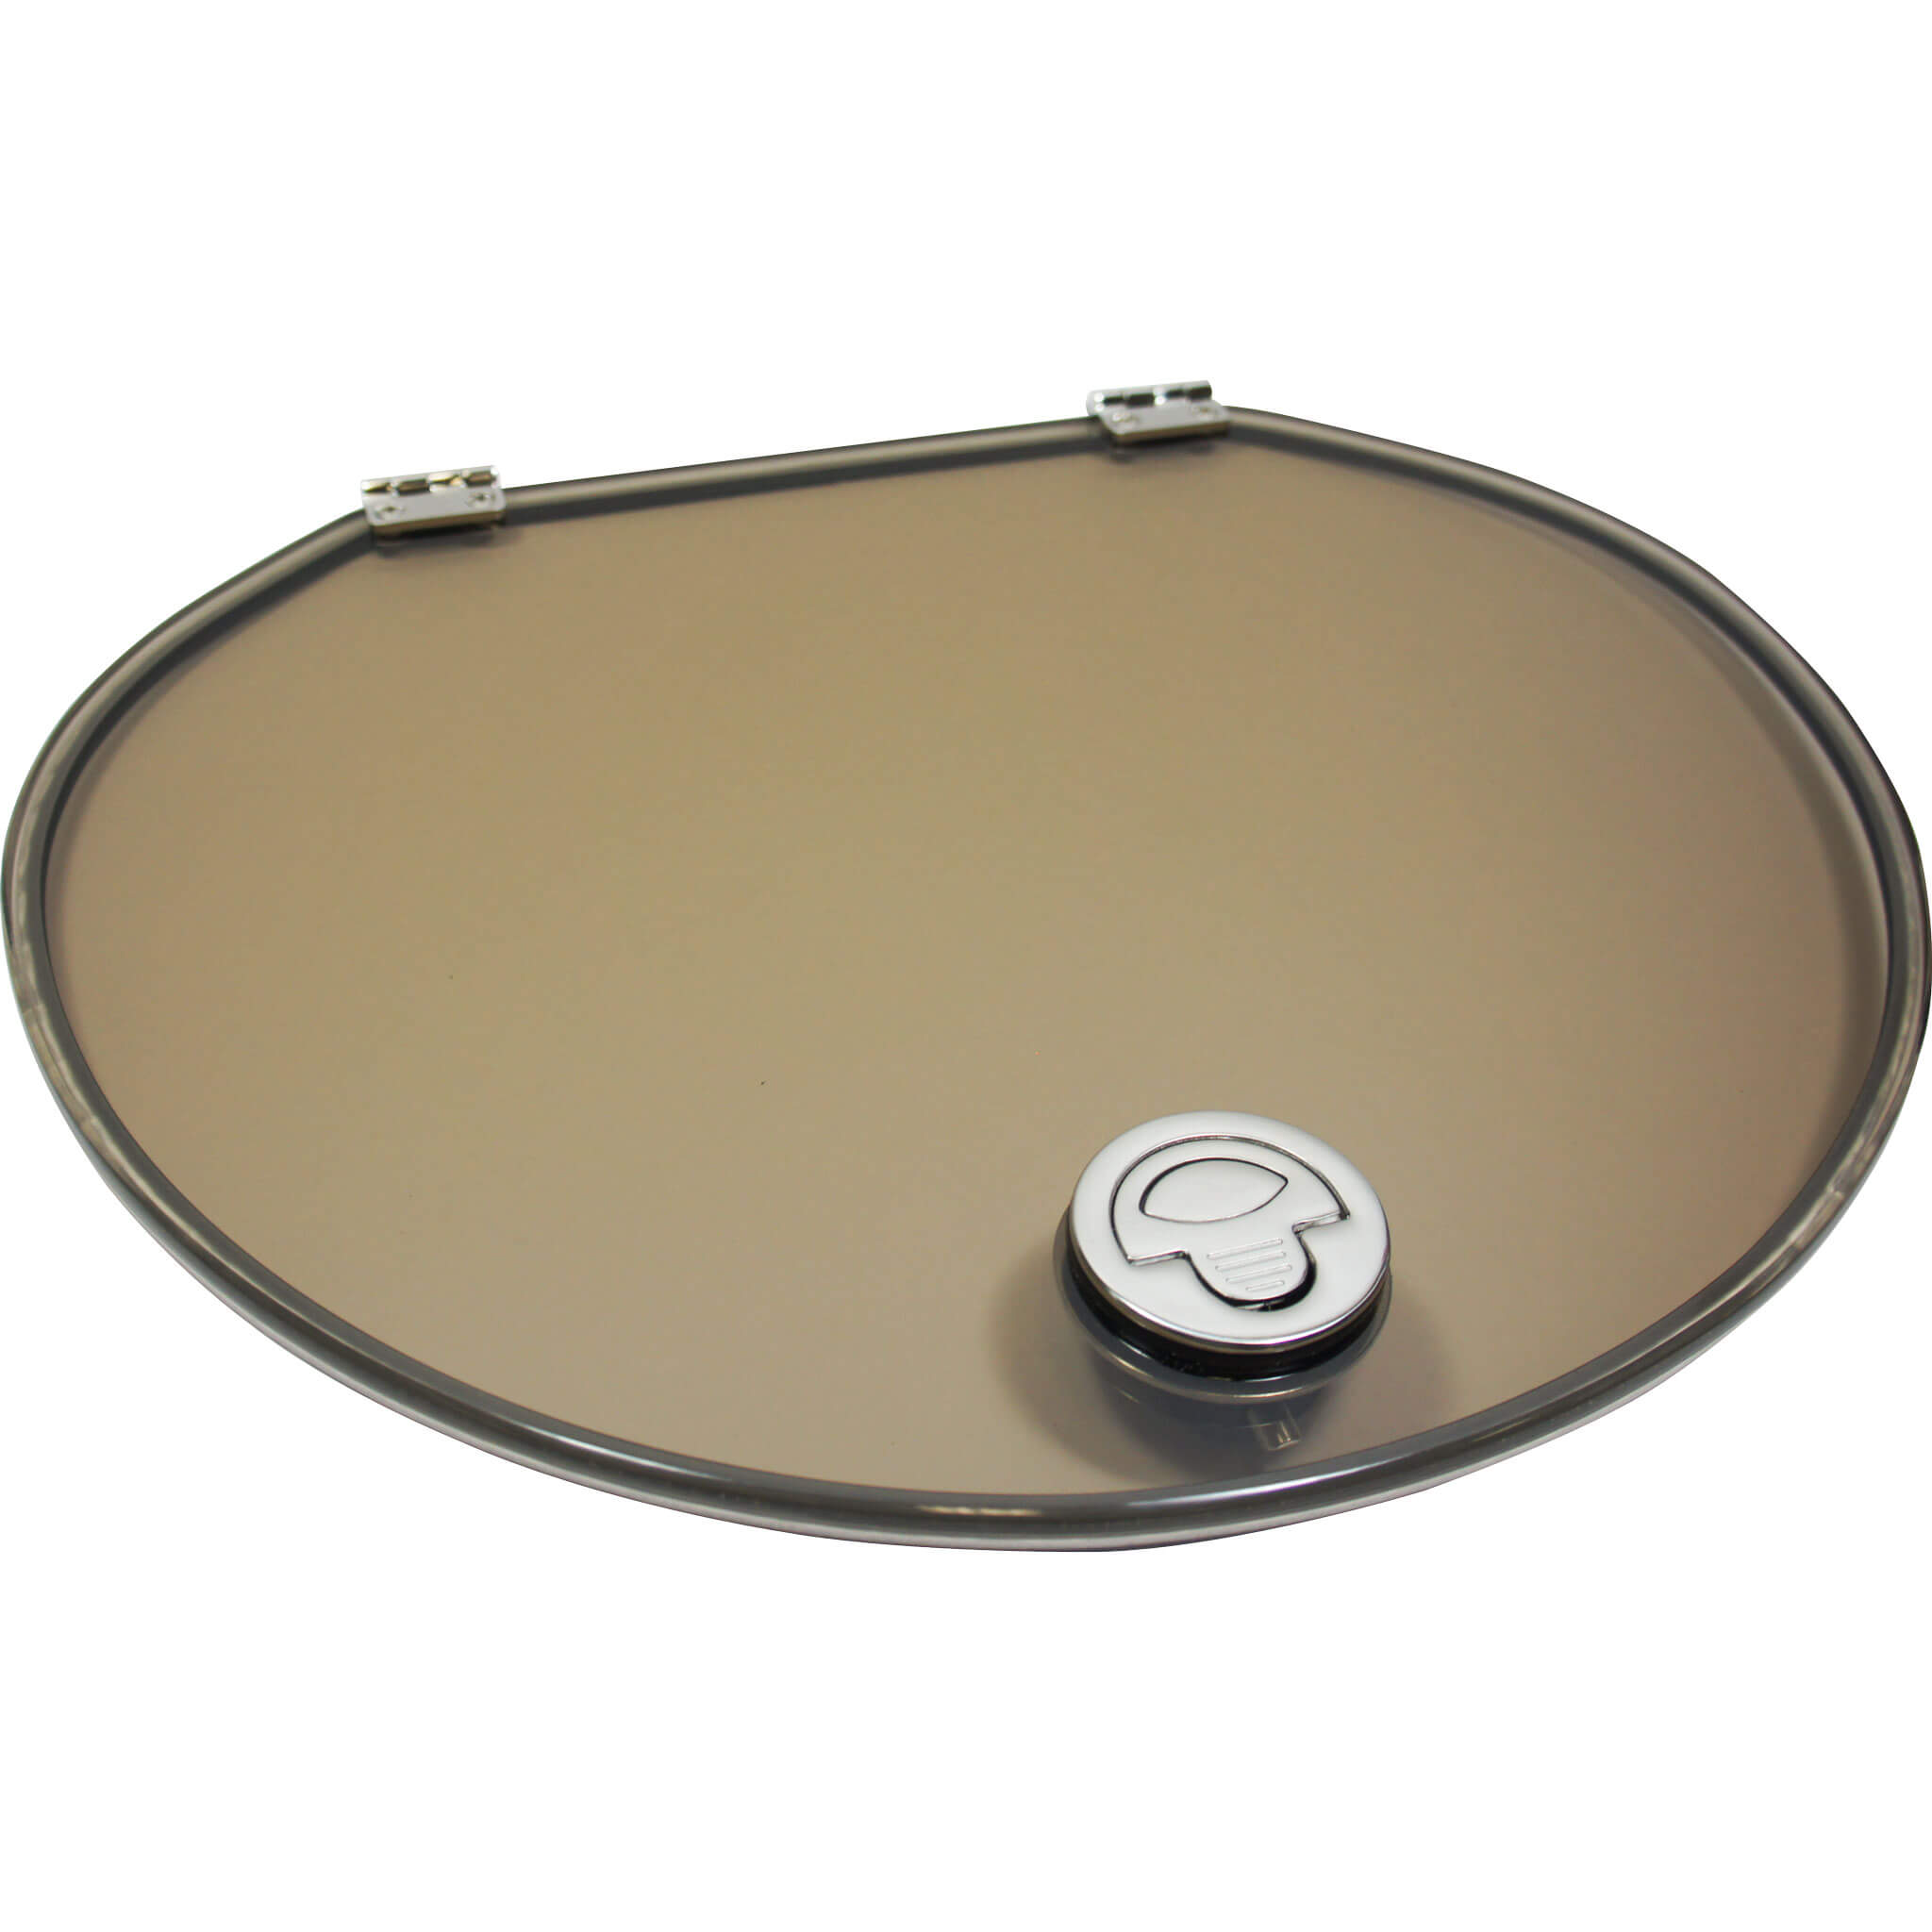 Scout Boat Livewell Baitwell Hatch Lid  DH1045245 XSF 191387-1965